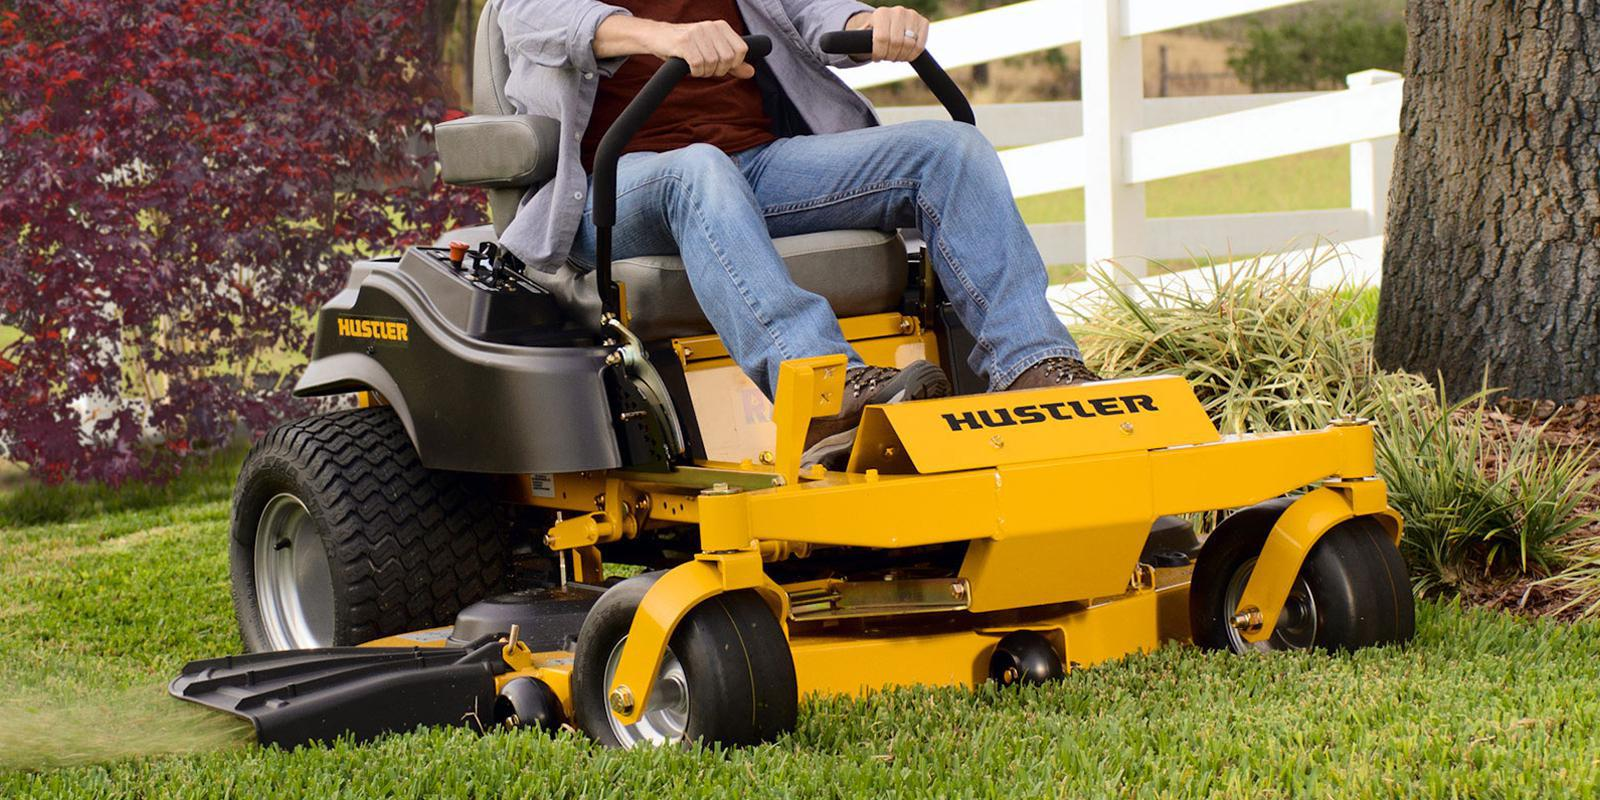 Hustler Raptor Mowers